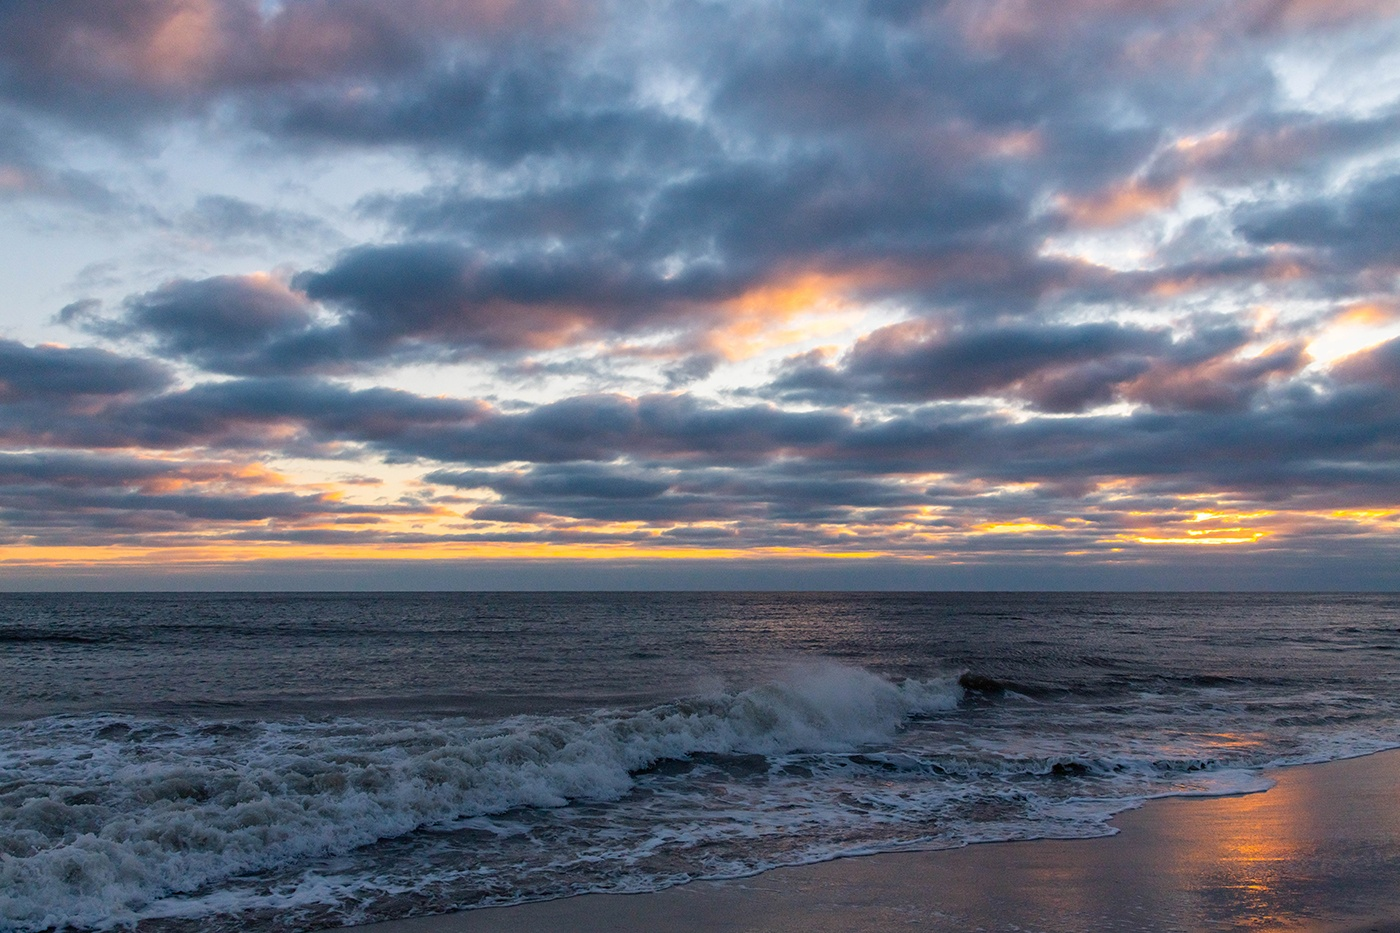 Waves crashing at sunset with clouds in the sky